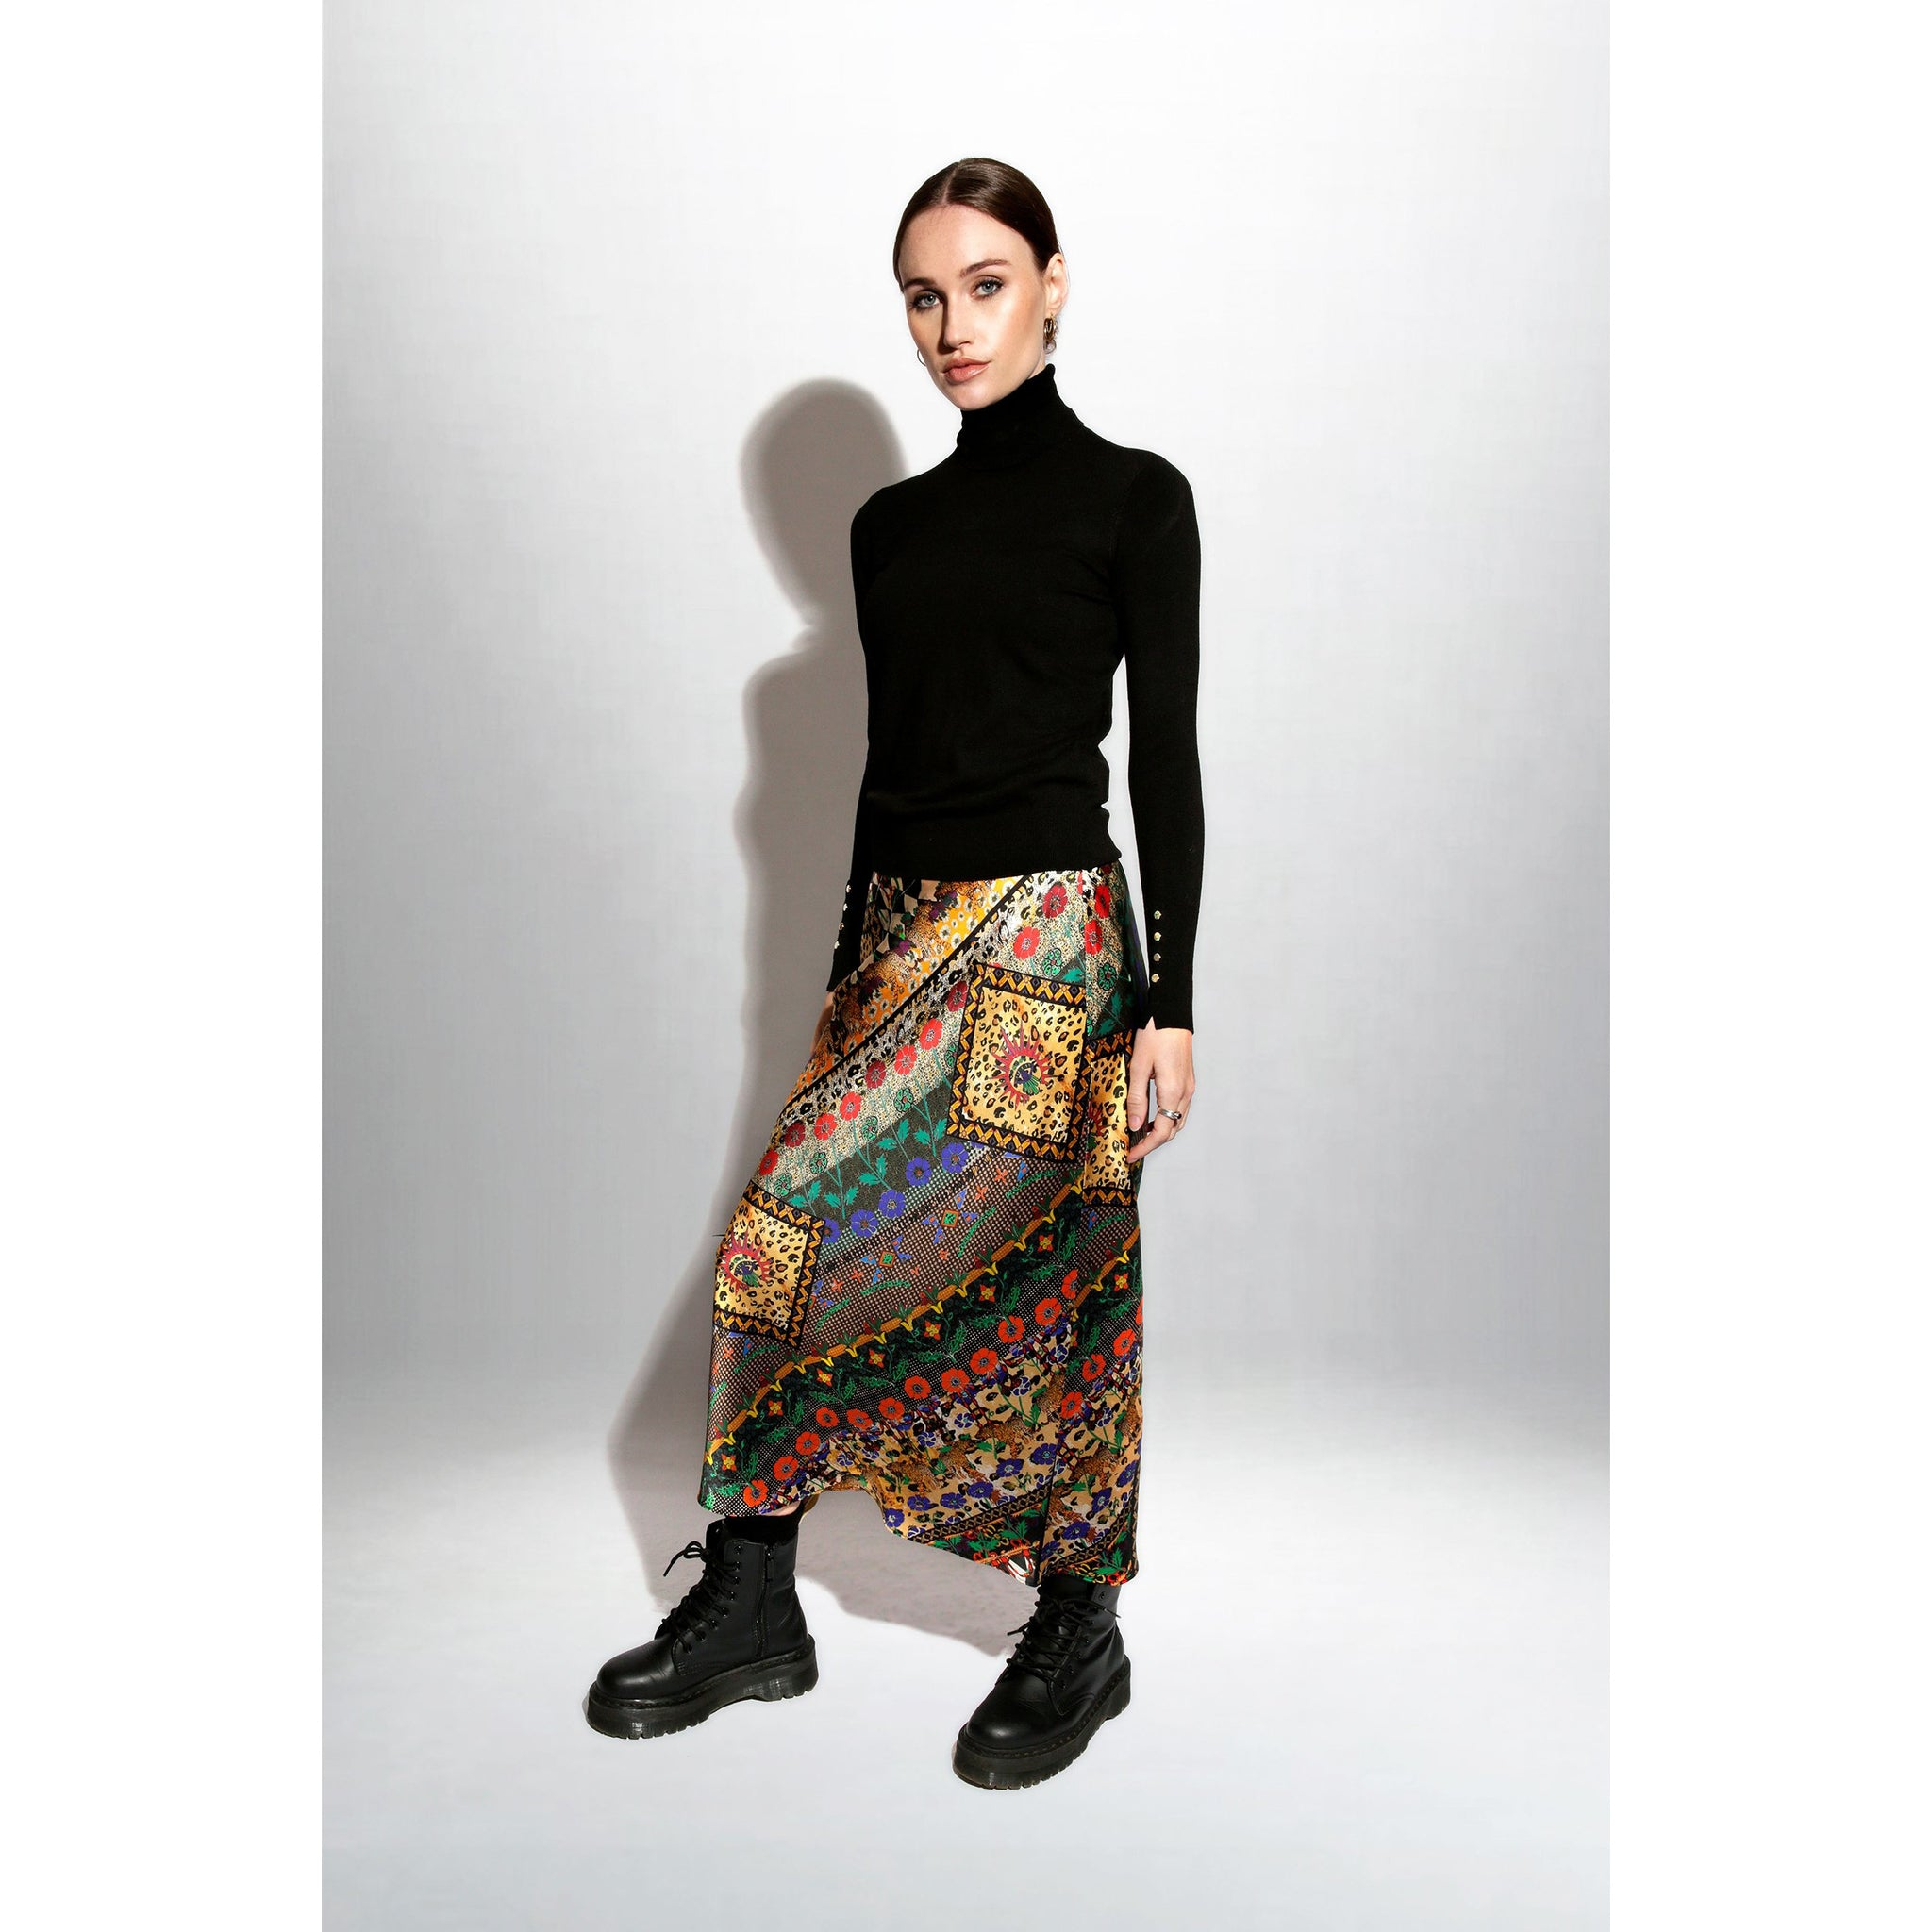 Animal-Folk-Story-Bias-Cut-Skirt_Modelshot-1_for-web.jpg